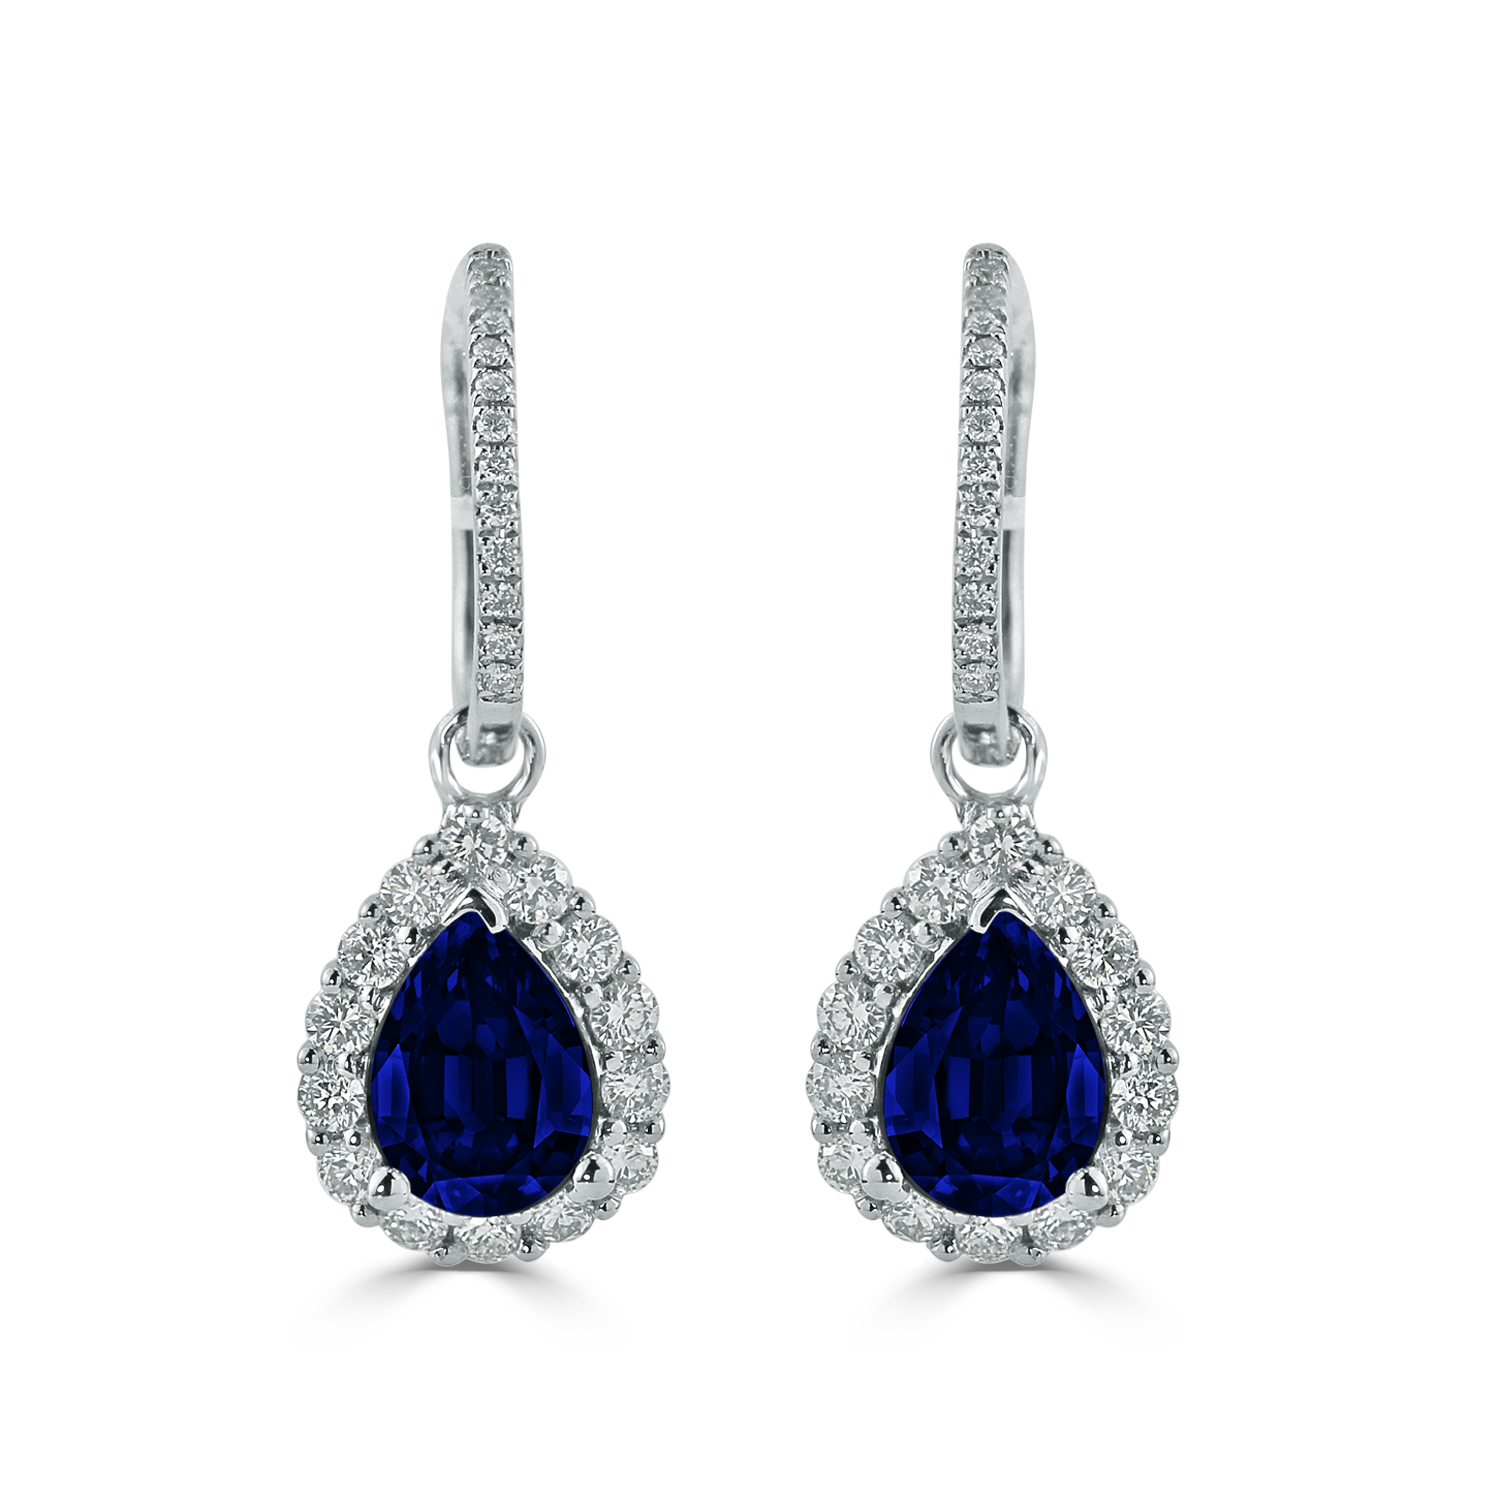 18K White Gold Halo Diamond Drop Earrings with 2 5/8 cttw Pear Blue Sapphire and 5/8 cttw Diamonds IGI Certified